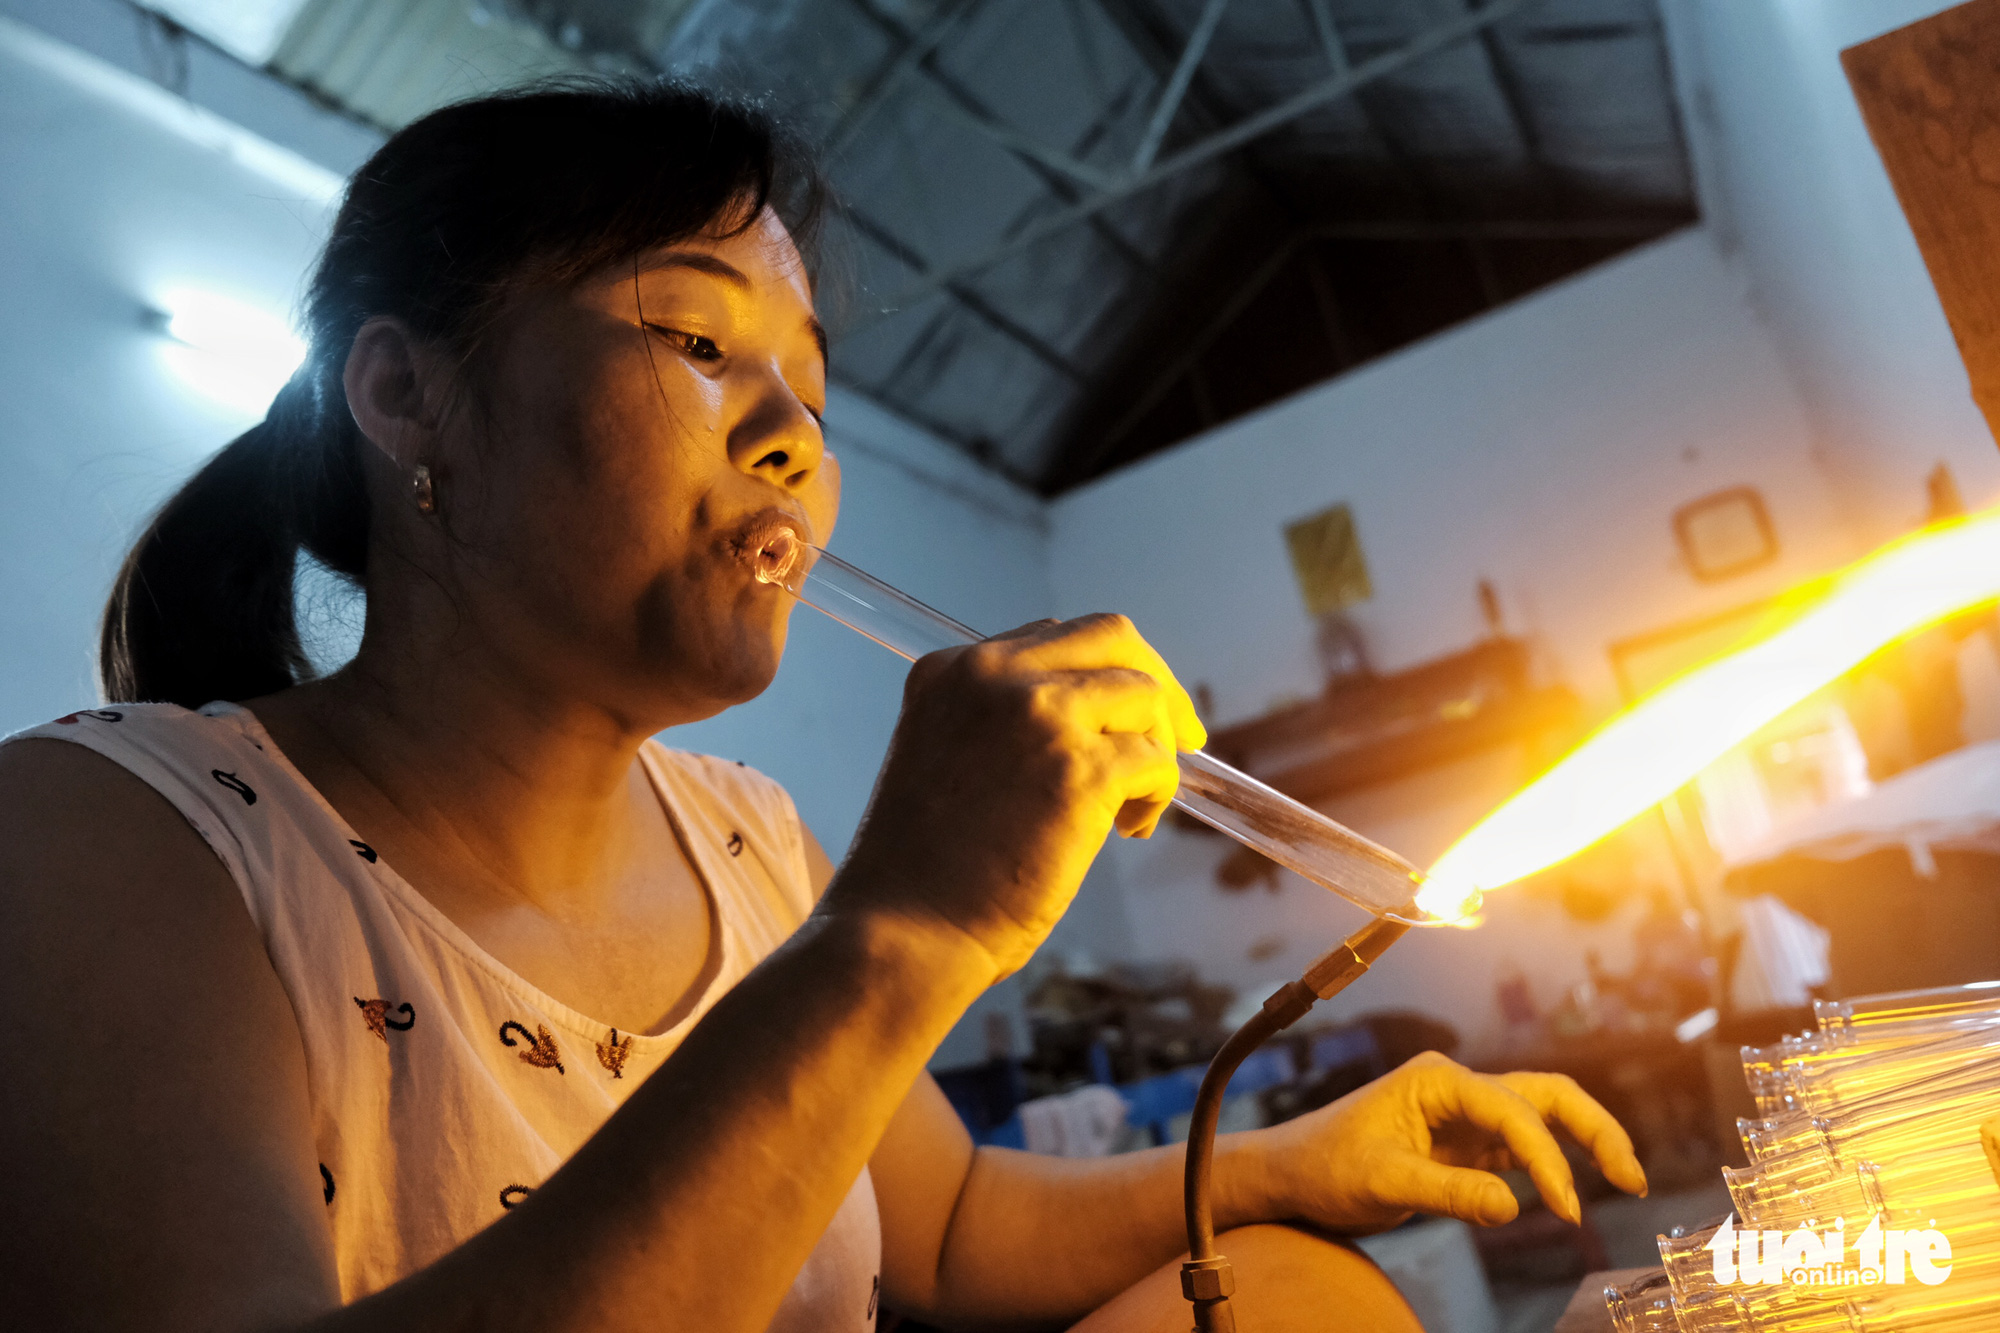 The family of Ta Thi Nga is among several households that still maintain the traditional glassblowing career at Hoang Xa Village, Thong Nhat Commune, Thuong Tin District on the outskirts of Hanoi, Vietnam. Her family produces test tubes, common pieces of laboratory glassware. Photo: Mai Thuong / Tuoi Tre